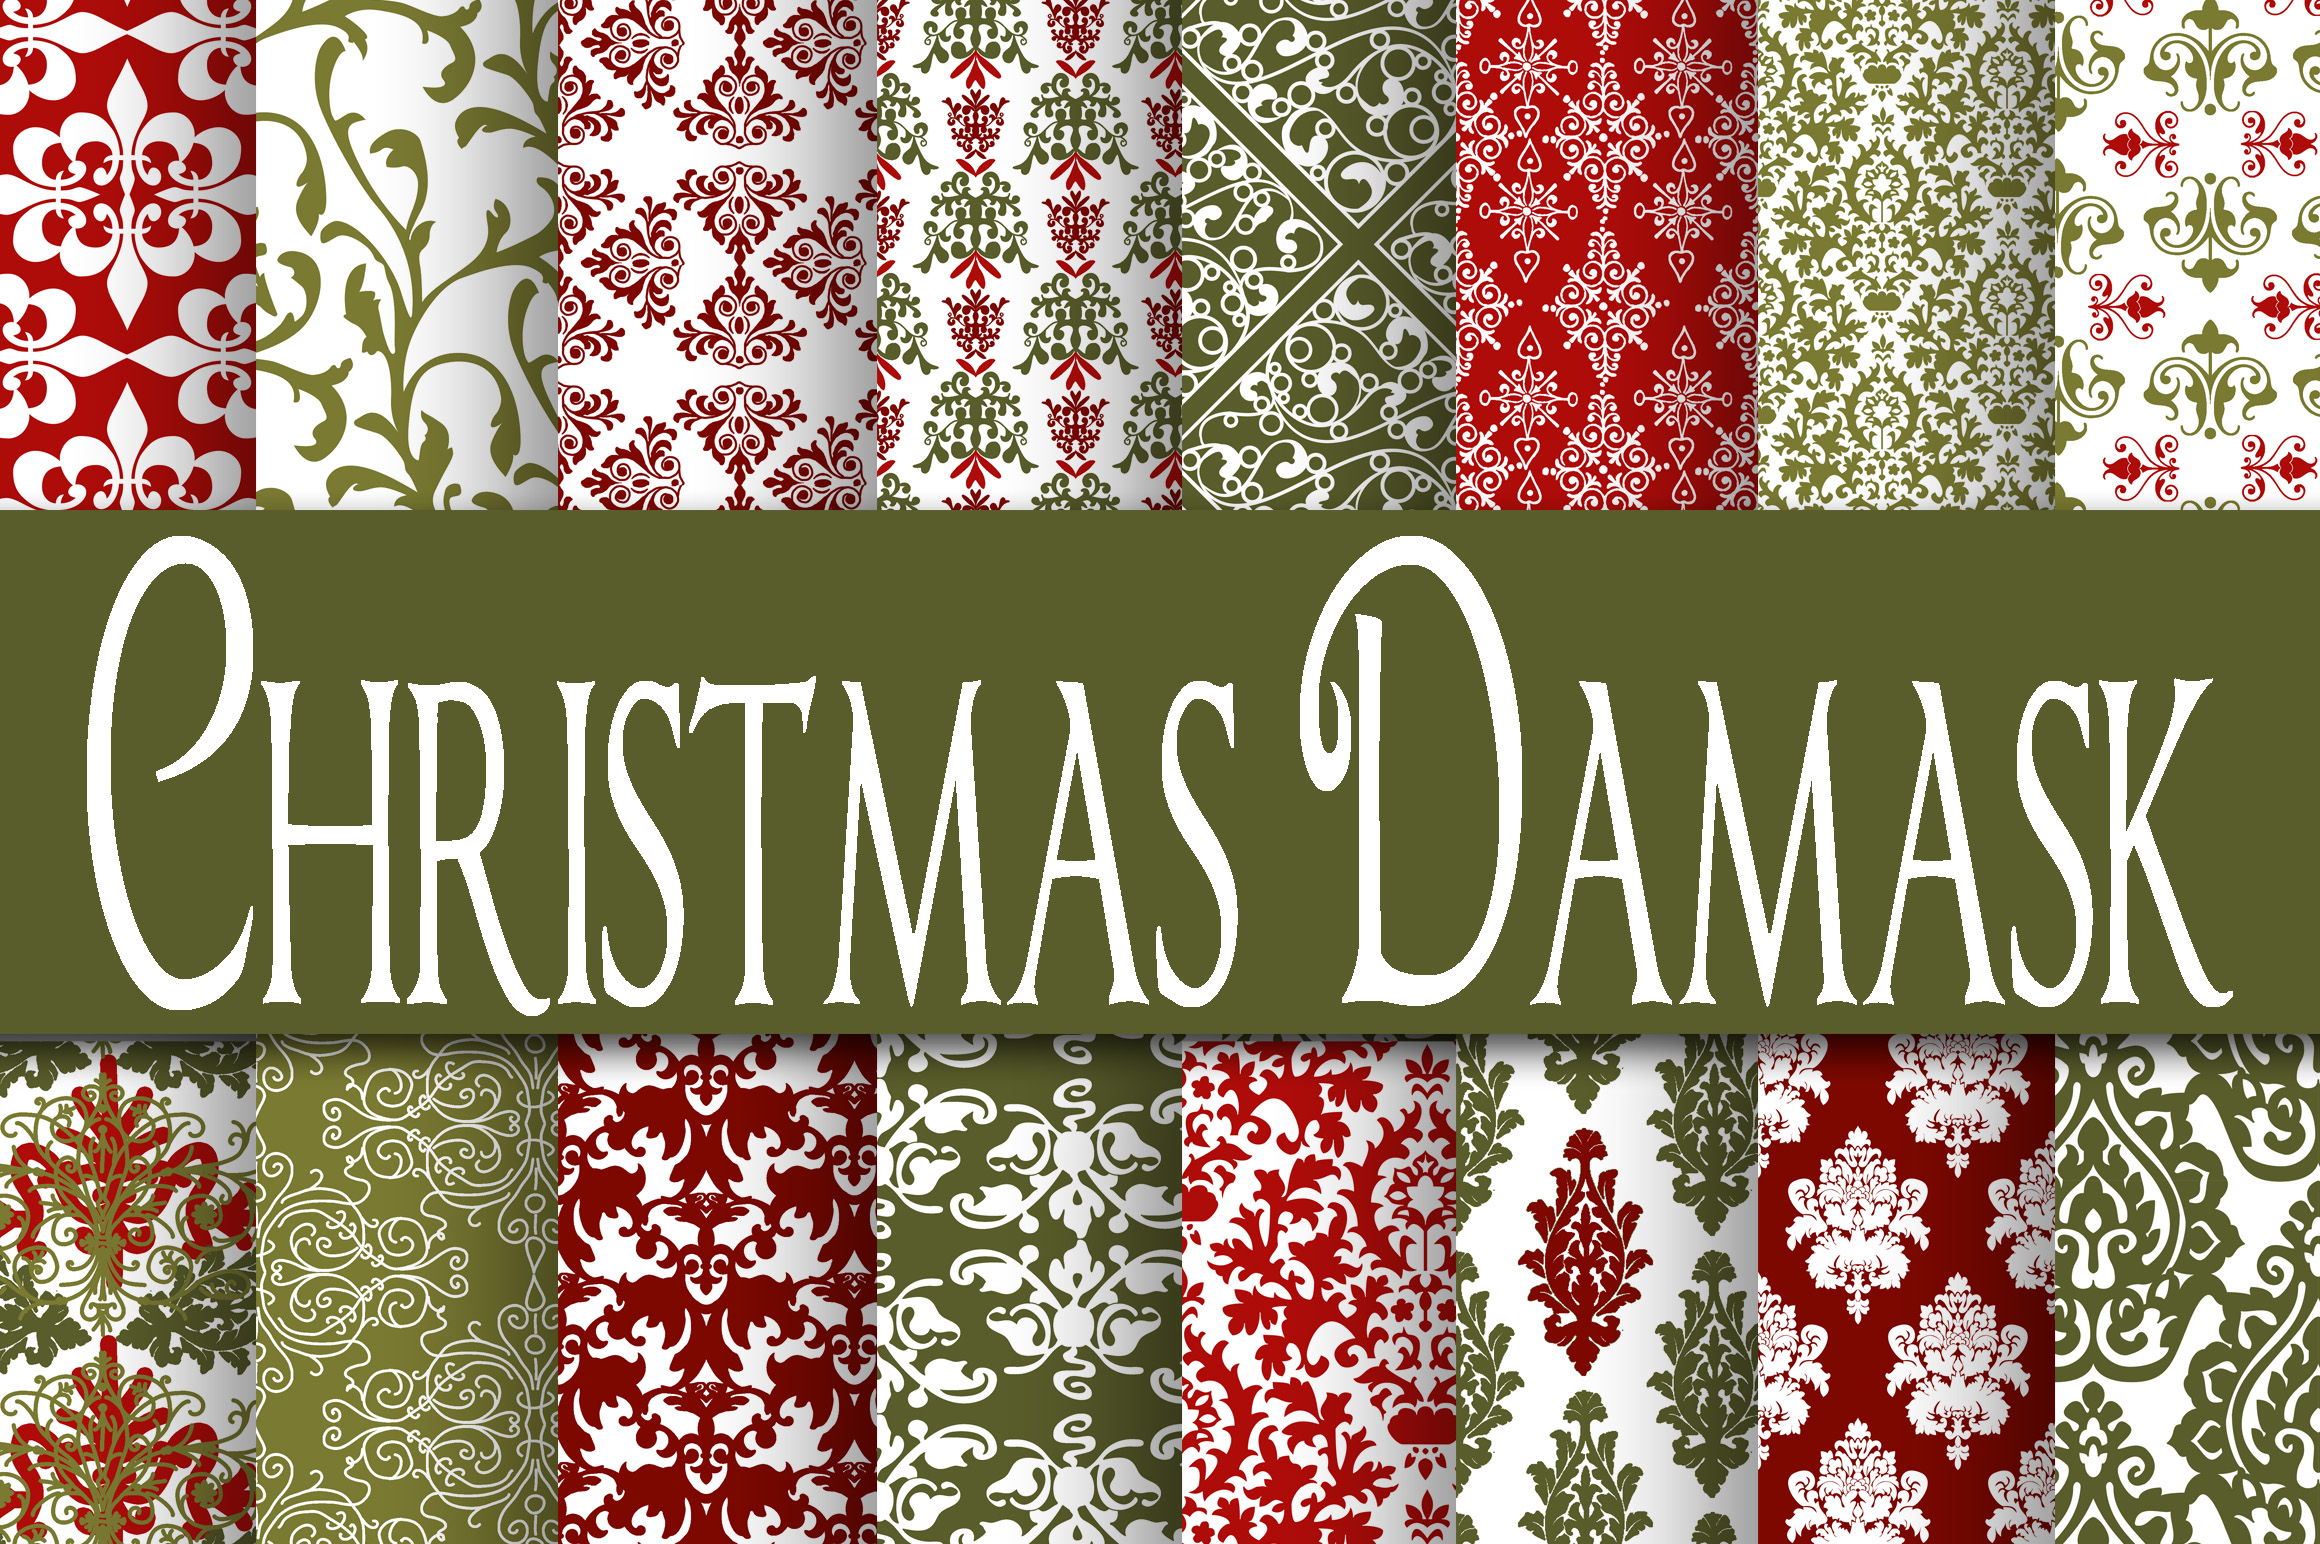 Christmas Damask Digital Paper Graphic By oldmarketdesigns